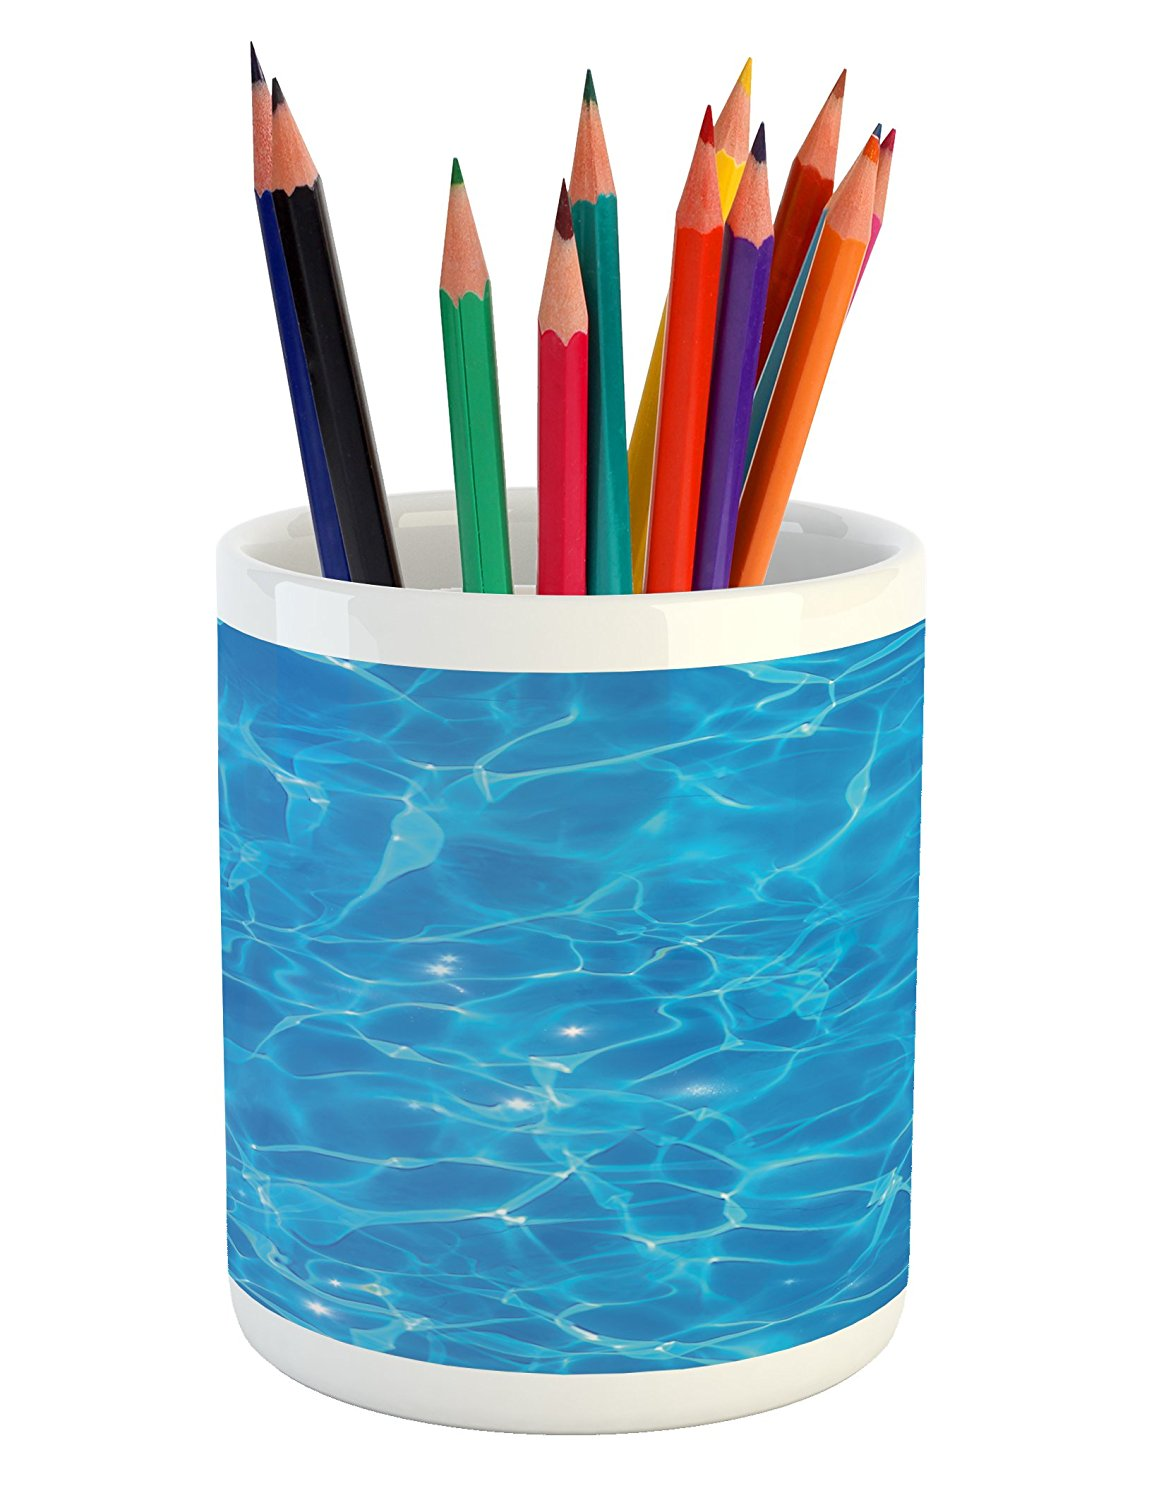 Lunarable Pale Blue Pencil Pen Holder, Aquatic Picture Pool Surface Clear Water Reflection Vibrant Summer Theme, Printed Ceramic Pencil Pen Holder for Desk Office Accessory, Blue Pale Blue